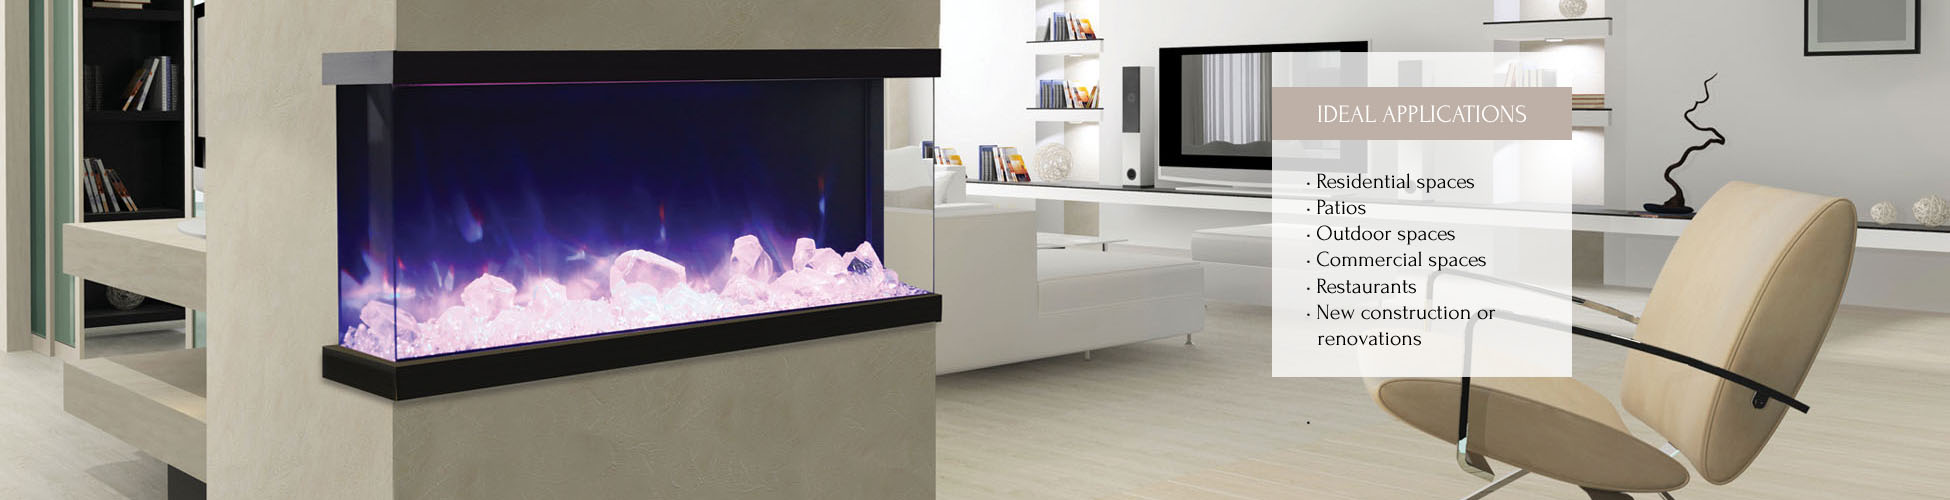 Amantii TRuView electric fireplace